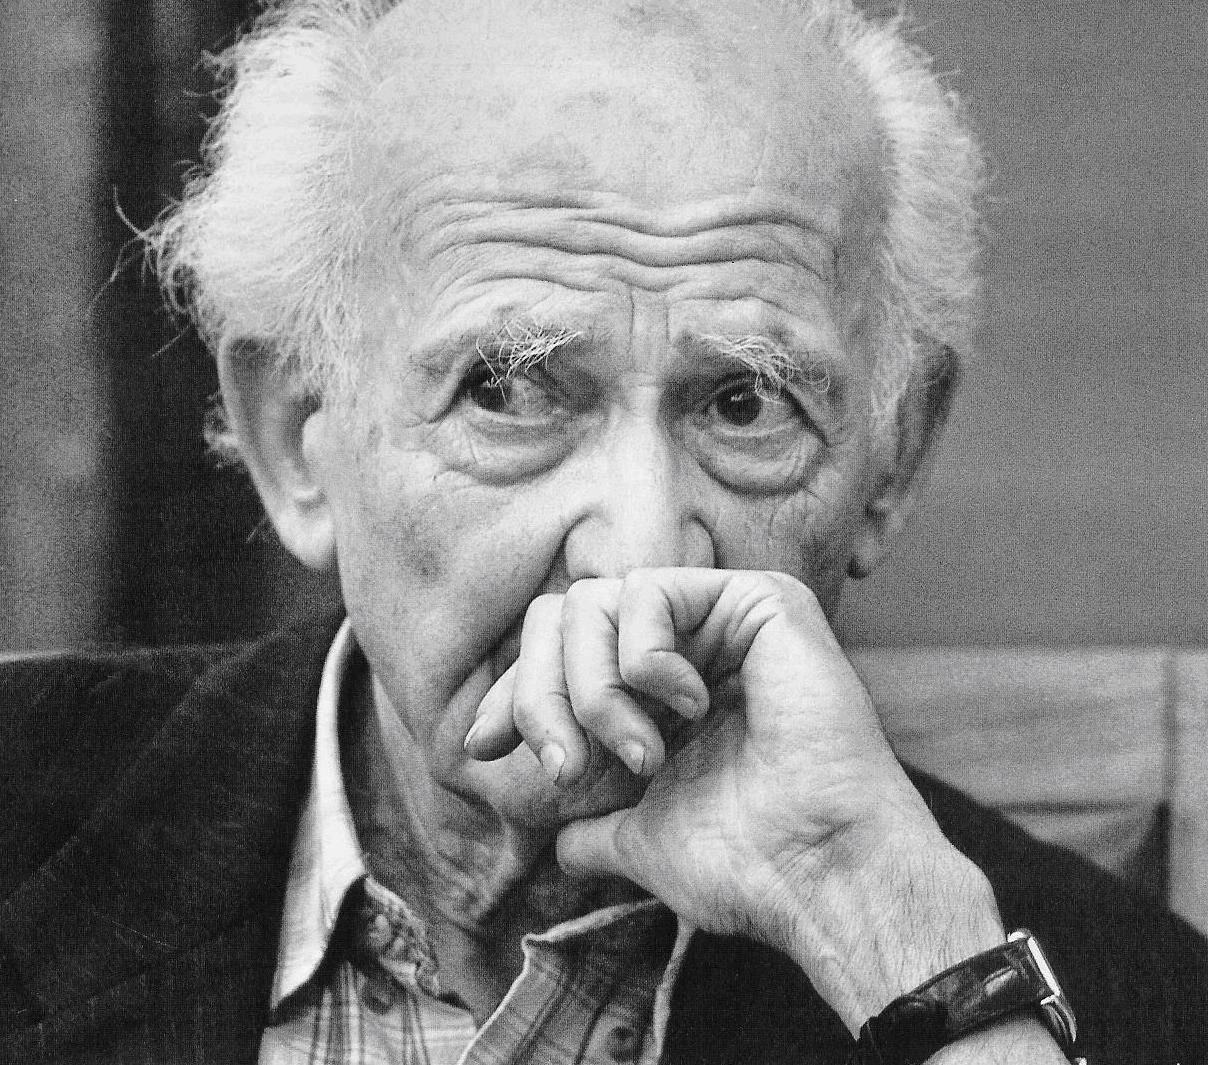 an introduction to the life and history of zygmunt bauman Zygmunt bauman essay examples an introduction to the life and history of zygmunt bauman a look into life and works of zygmunt bauman.